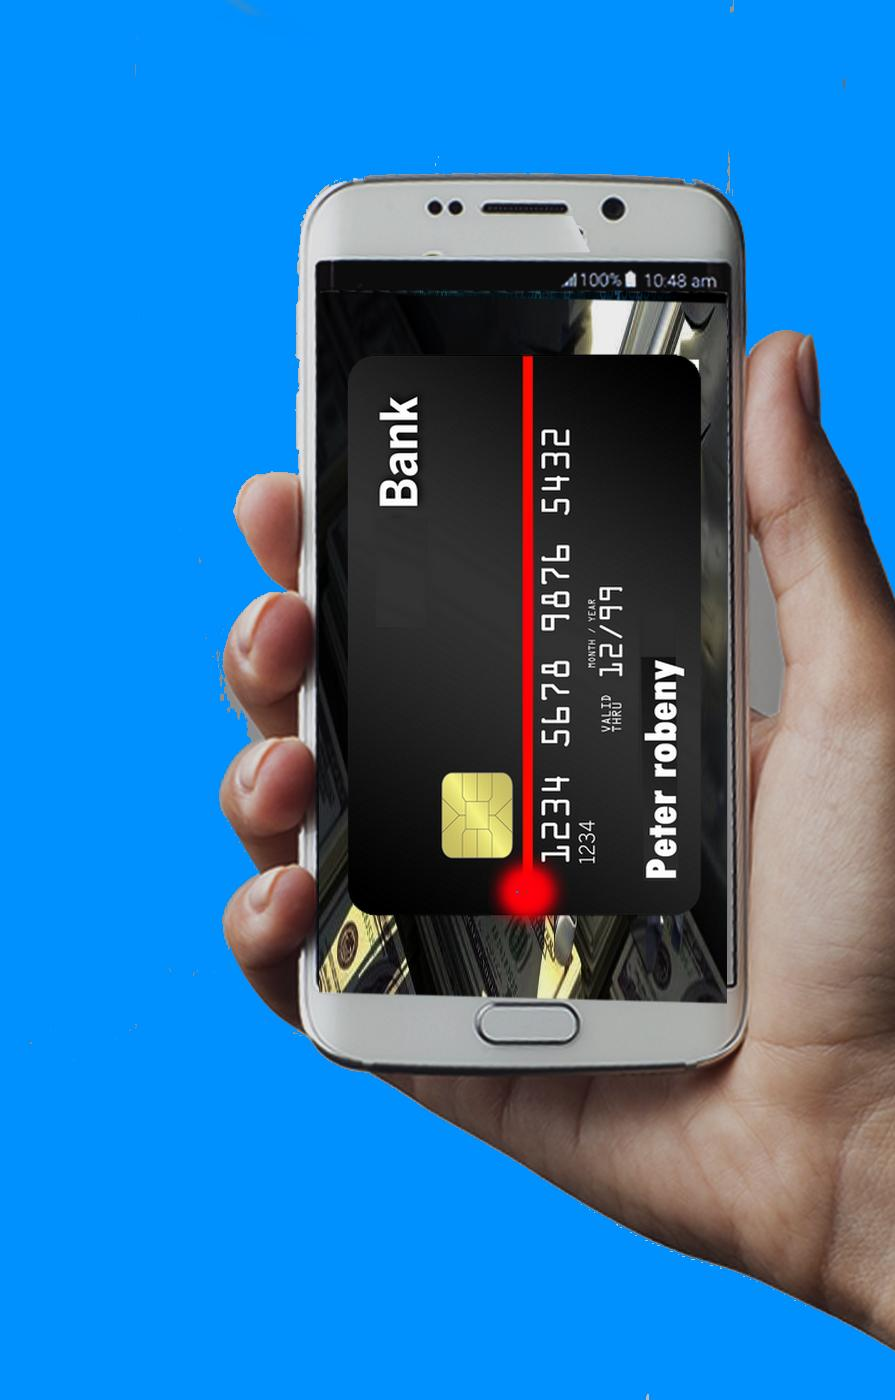 Hack atm pin number prank for Android - APK Download